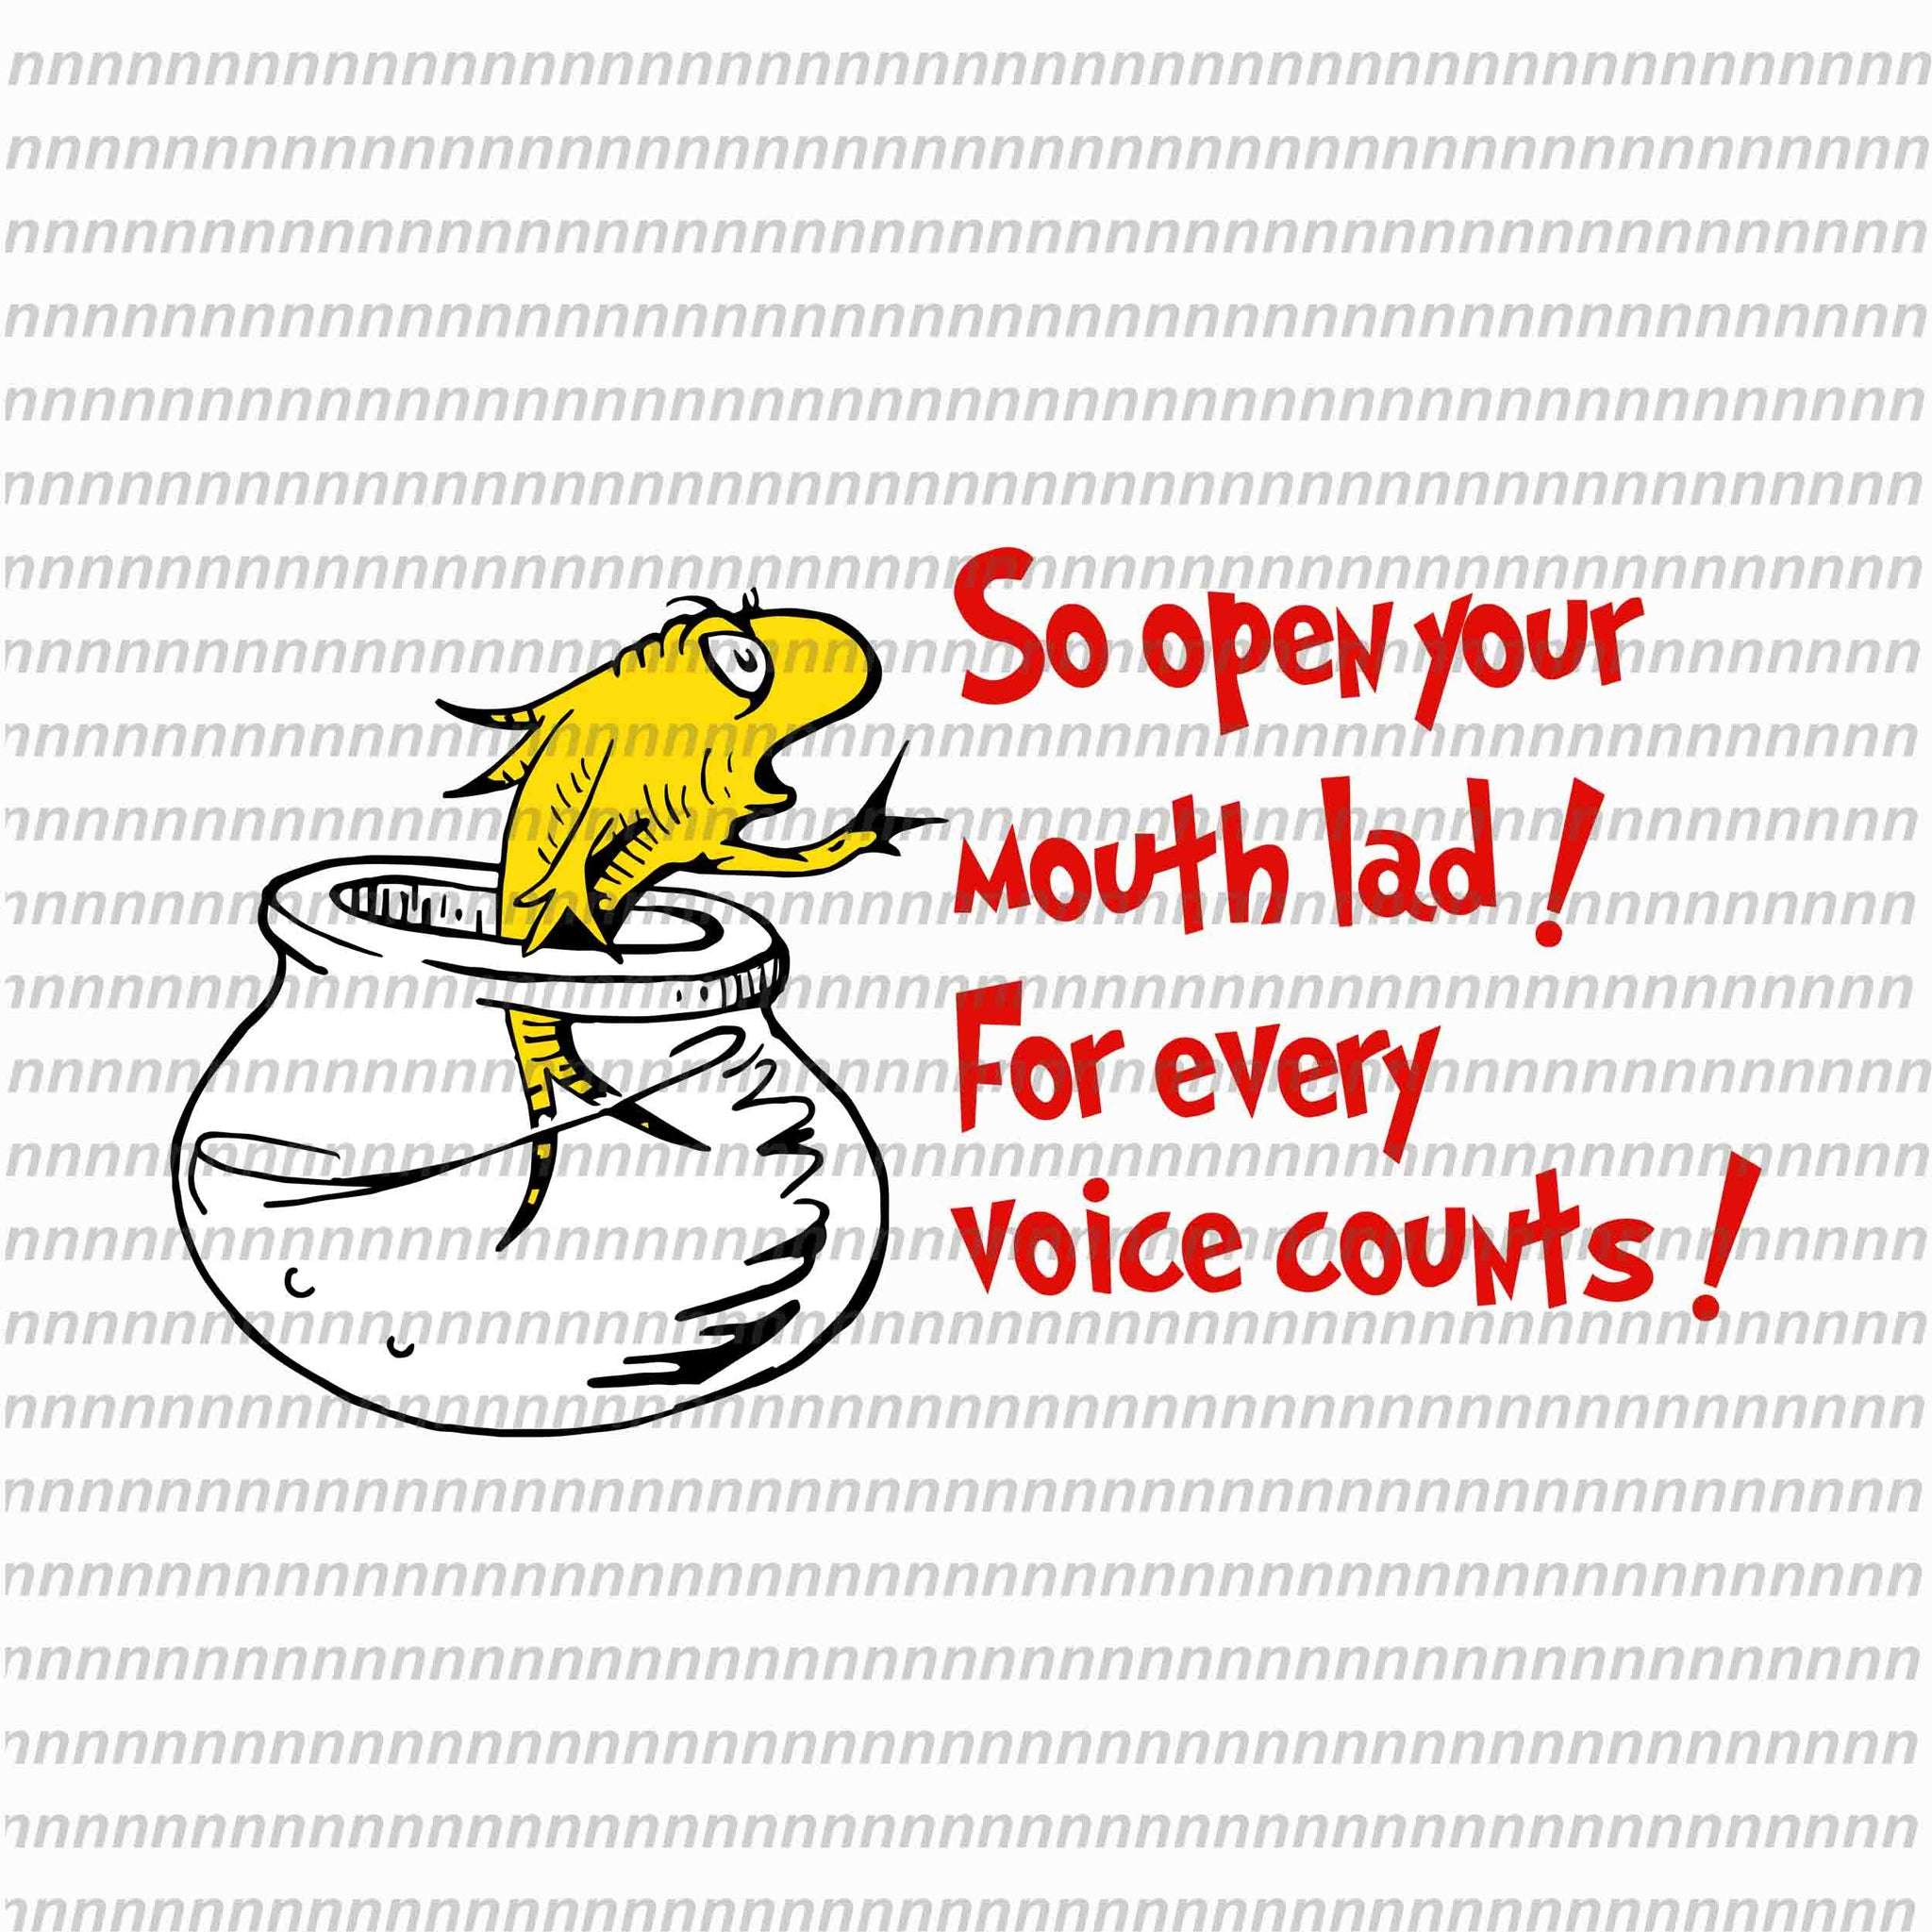 So open your mouth lad for every voice counts, dr seuss svg,dr seuss vector, dr seuss quote, dr seuss design, Cat in the hat svg, thing 1 thing 2 thing 3, svg, png, dxf, eps file